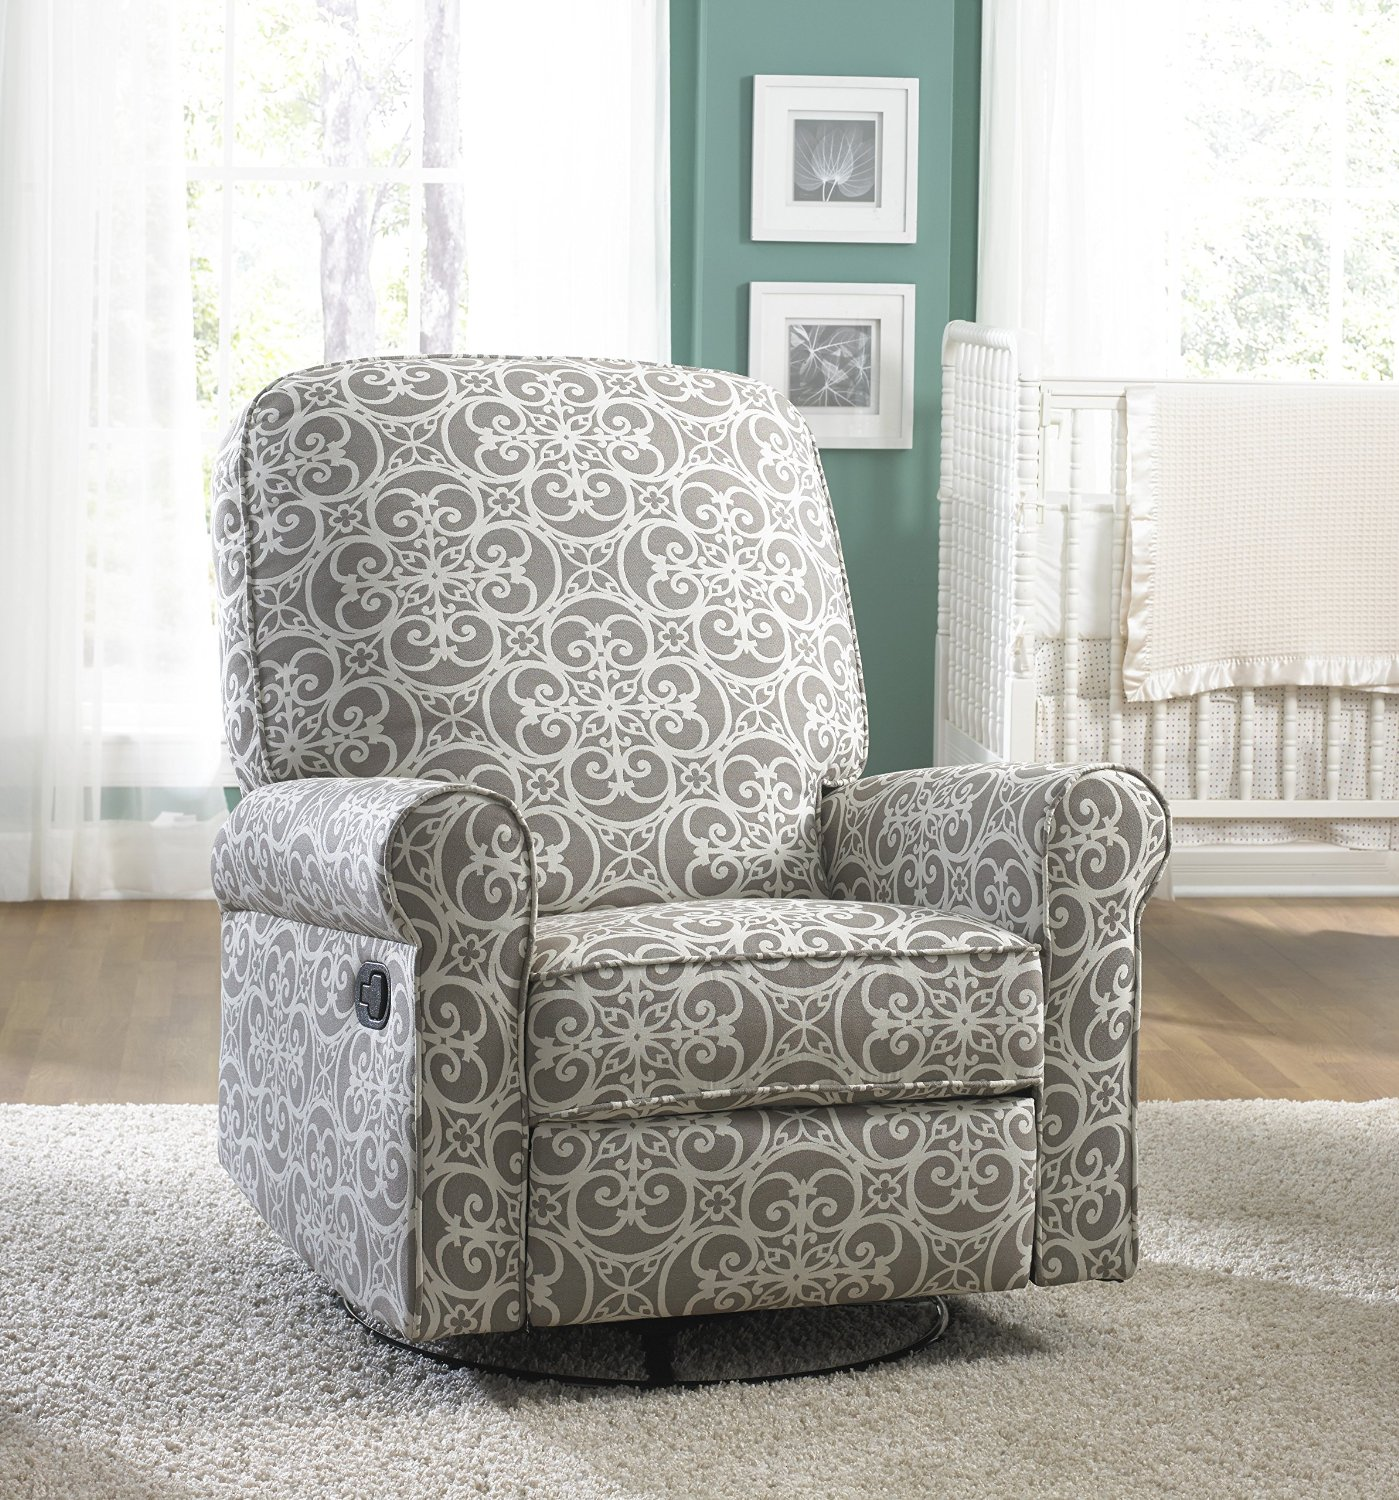 Glider Recliner | Reclining Swivel Glider | Glider Rocker Recliner with Ottoman